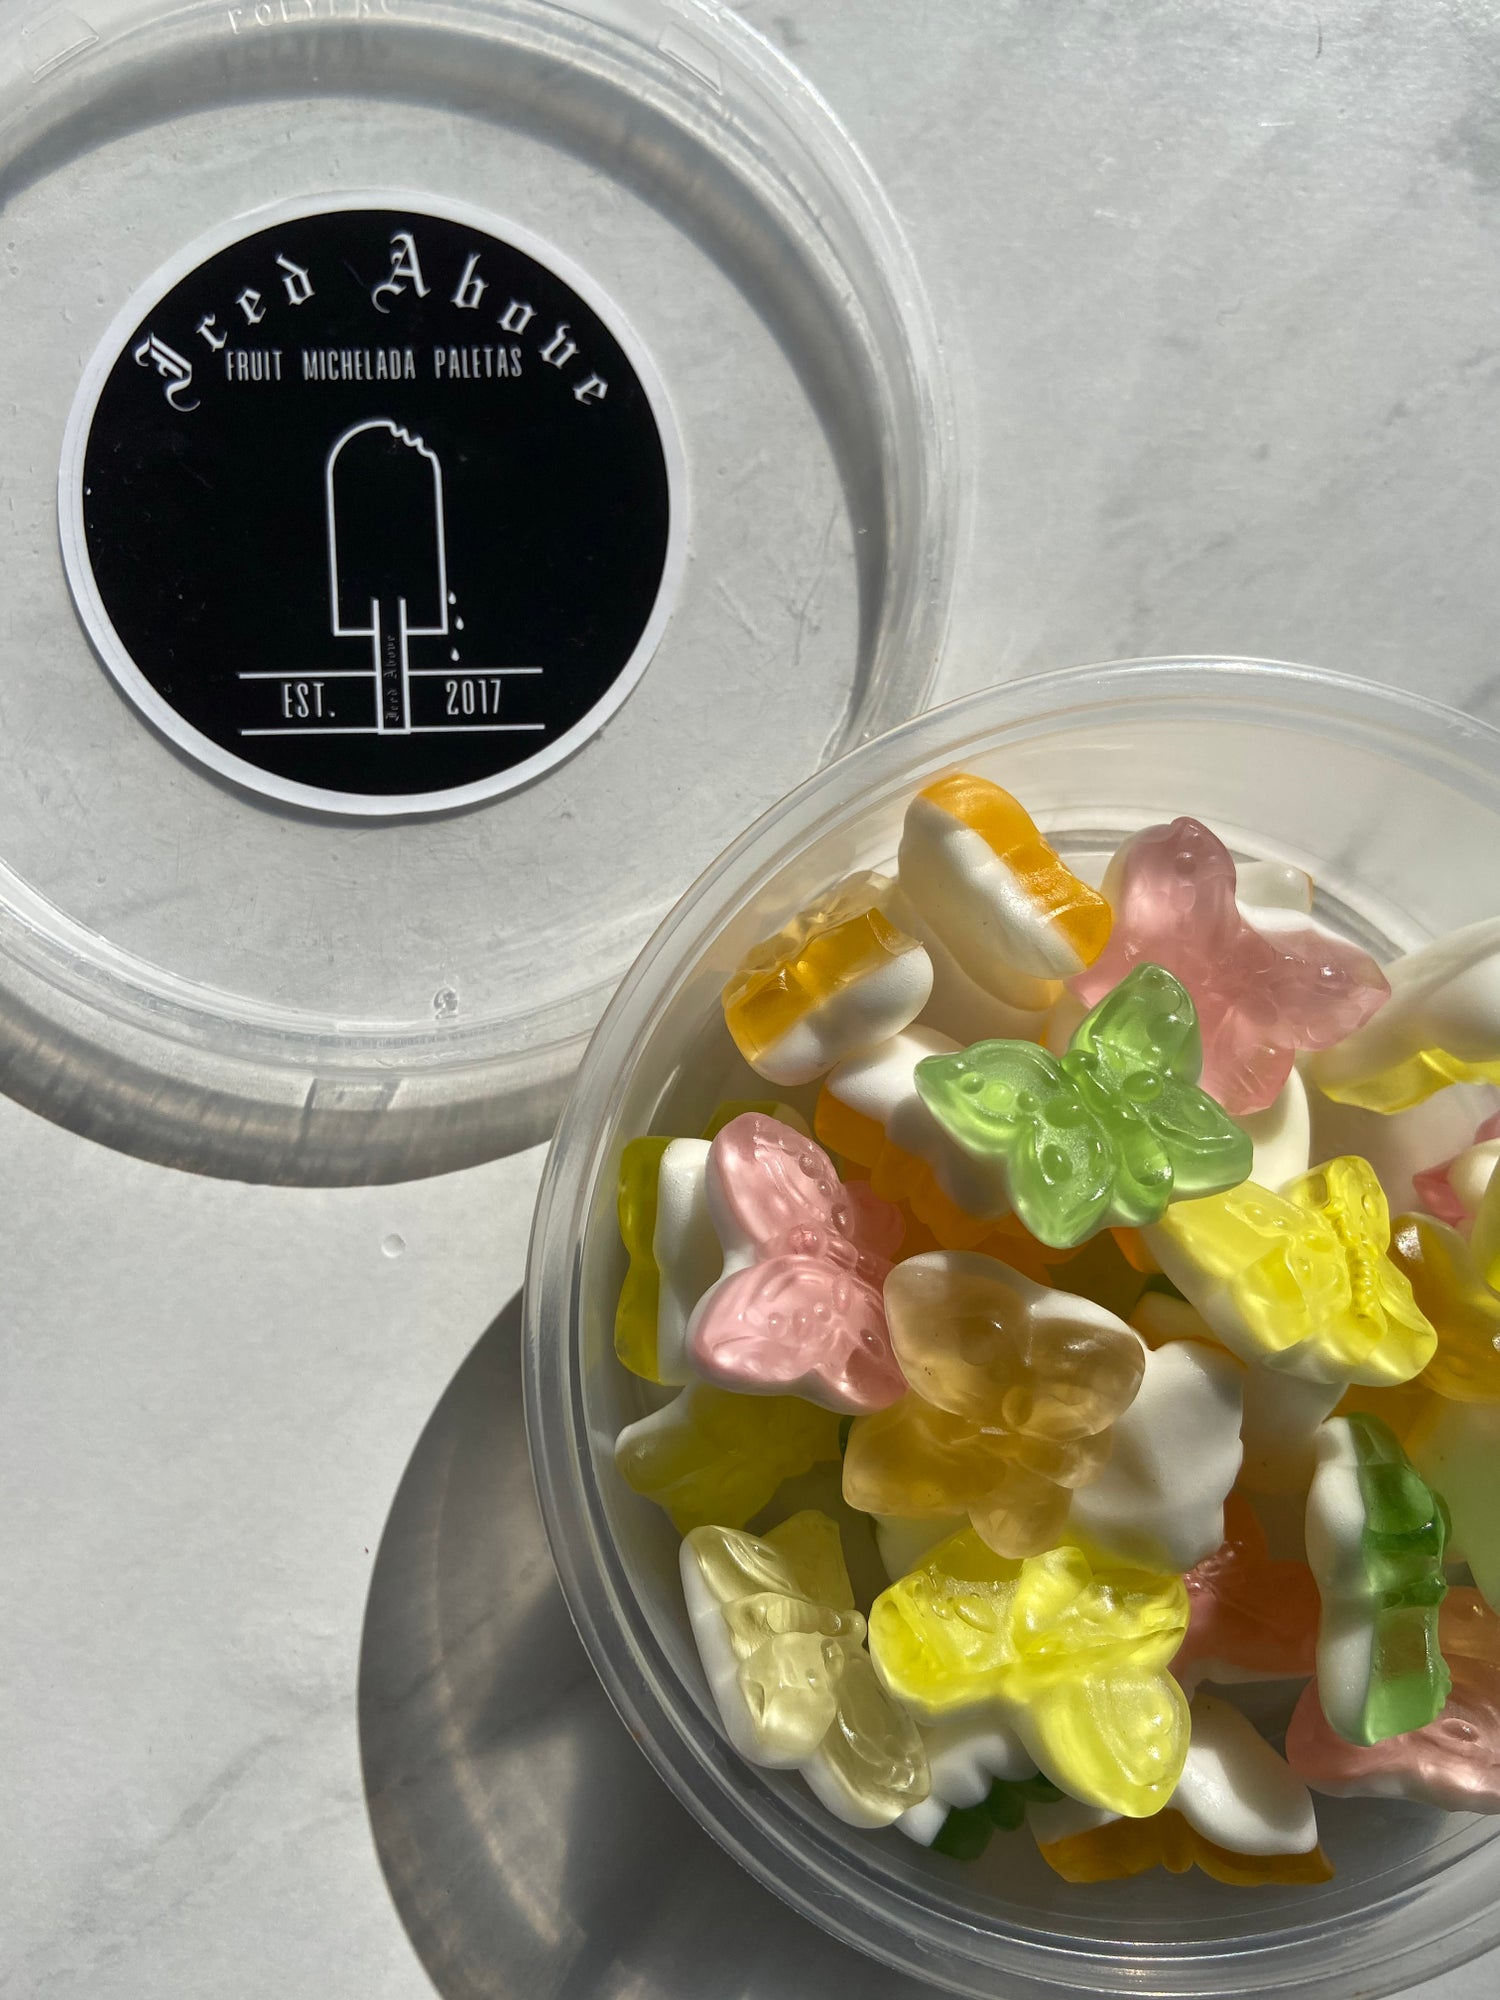 Image of Iced Above Sugar Free Keto Friendly Butterflies